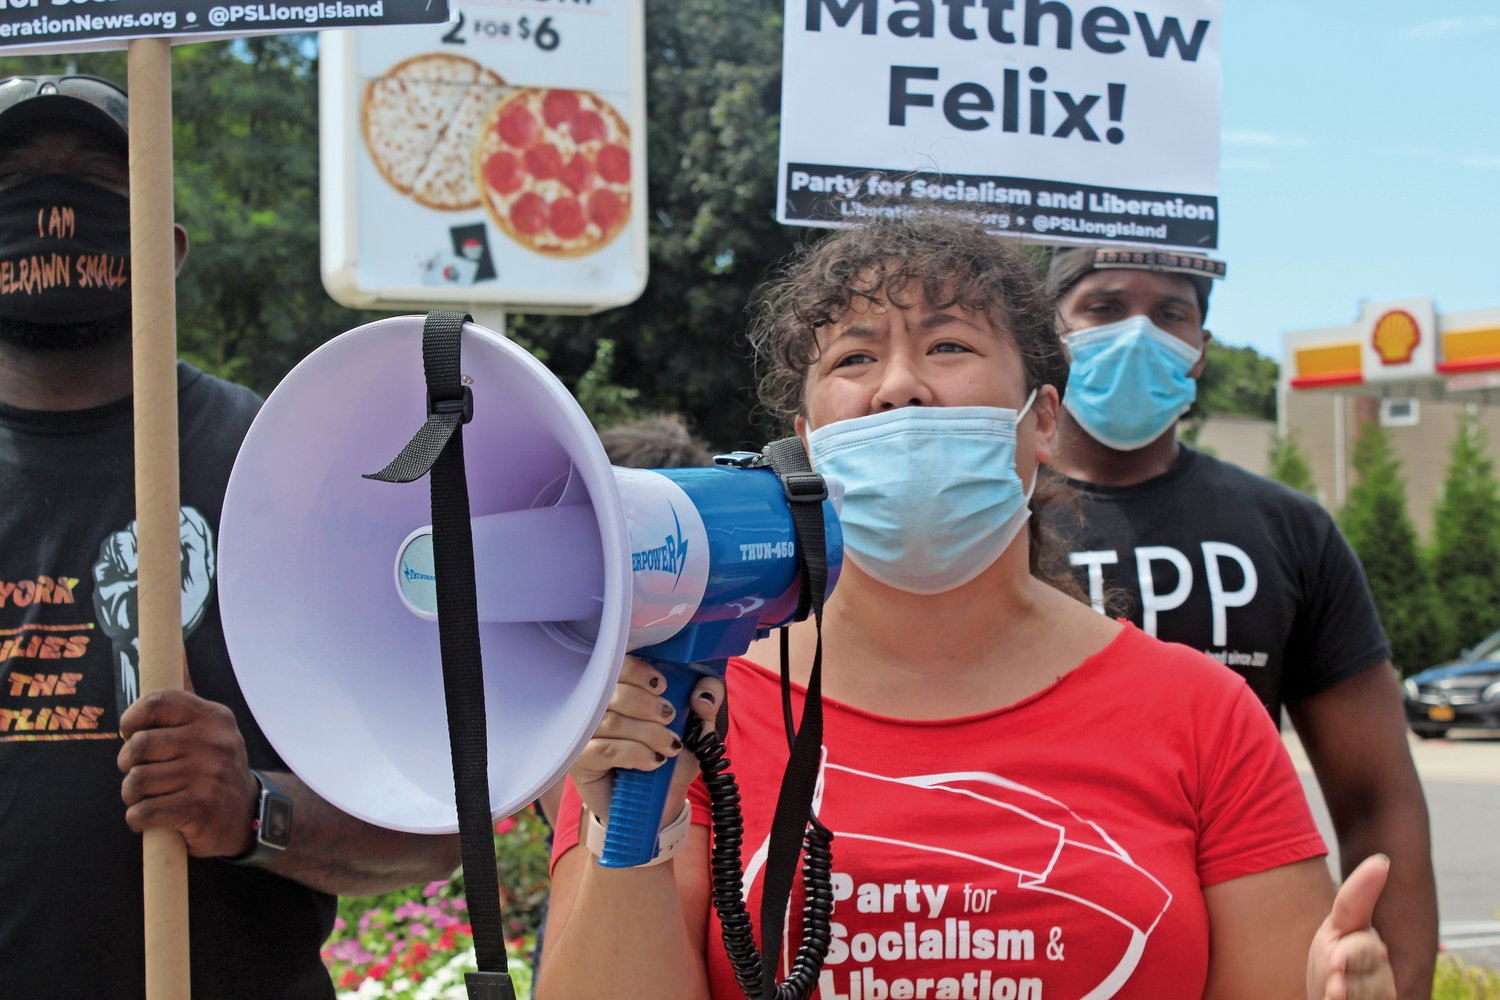 Rachel Hu, organizer of the Party for Socialism and Liberation on Long Island spoke at the rally.